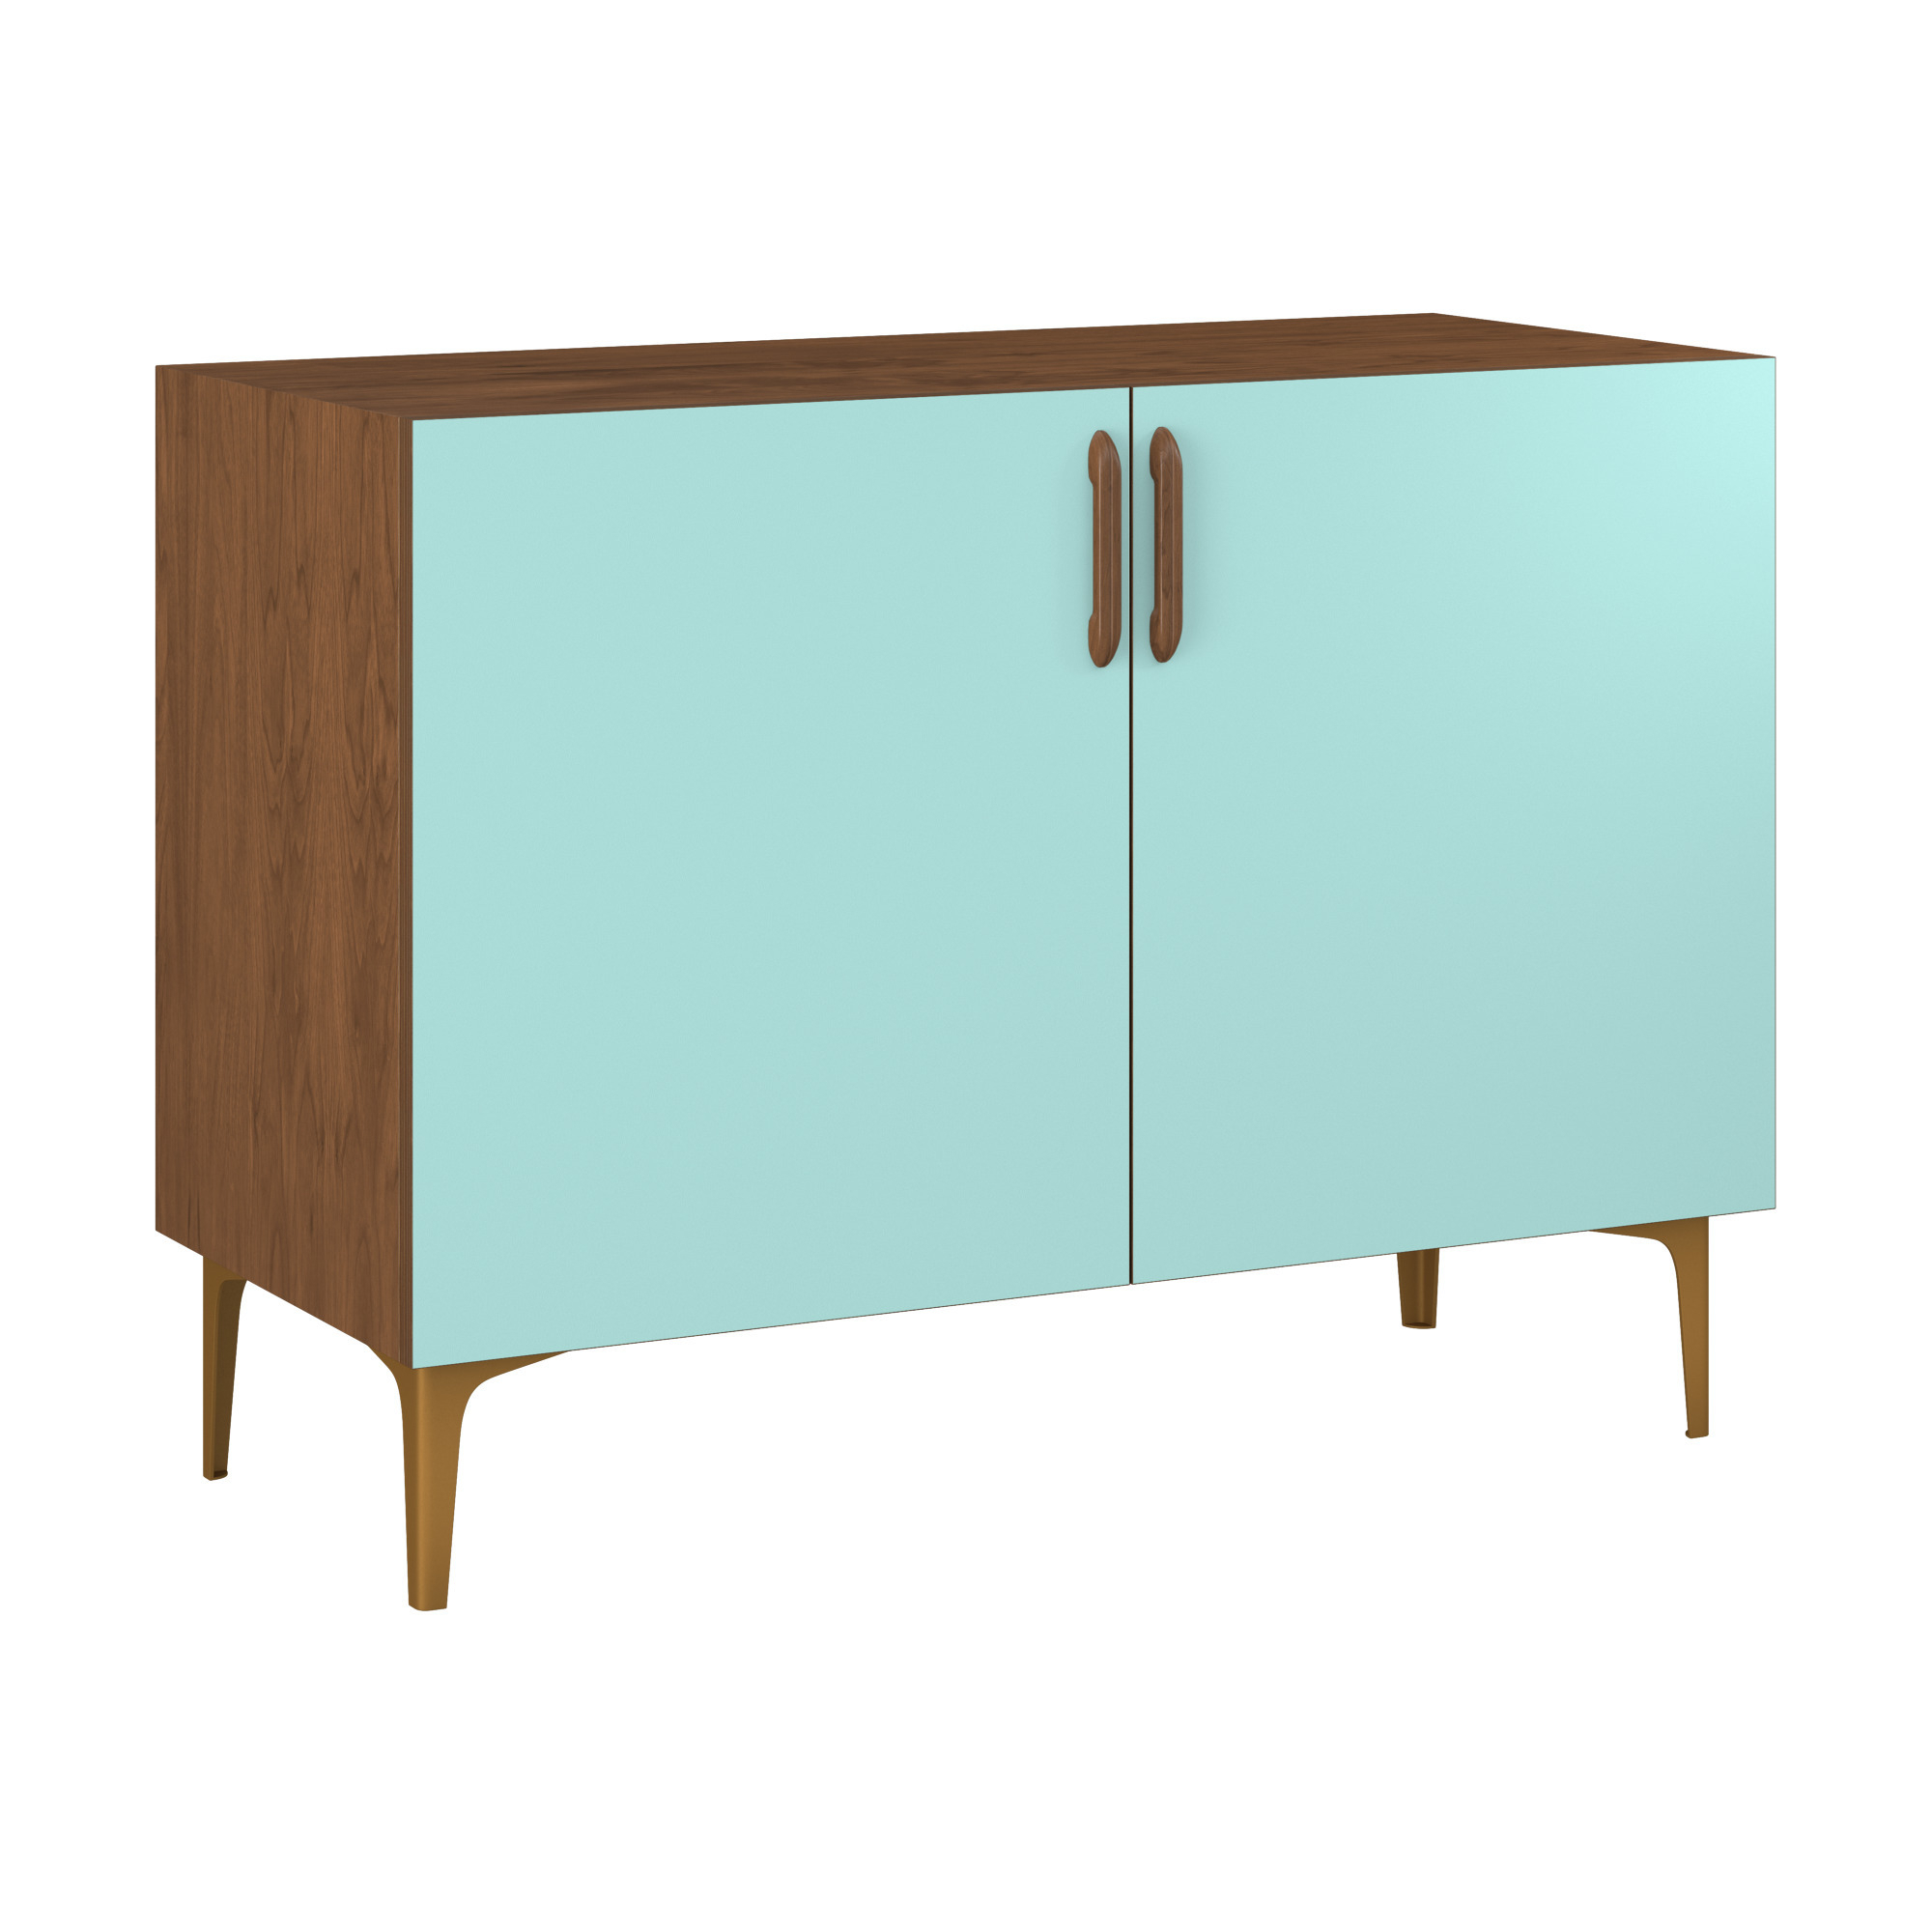 Customize Credenzas | Snugsquare Throughout Turquoise Skies Credenzas (View 15 of 30)